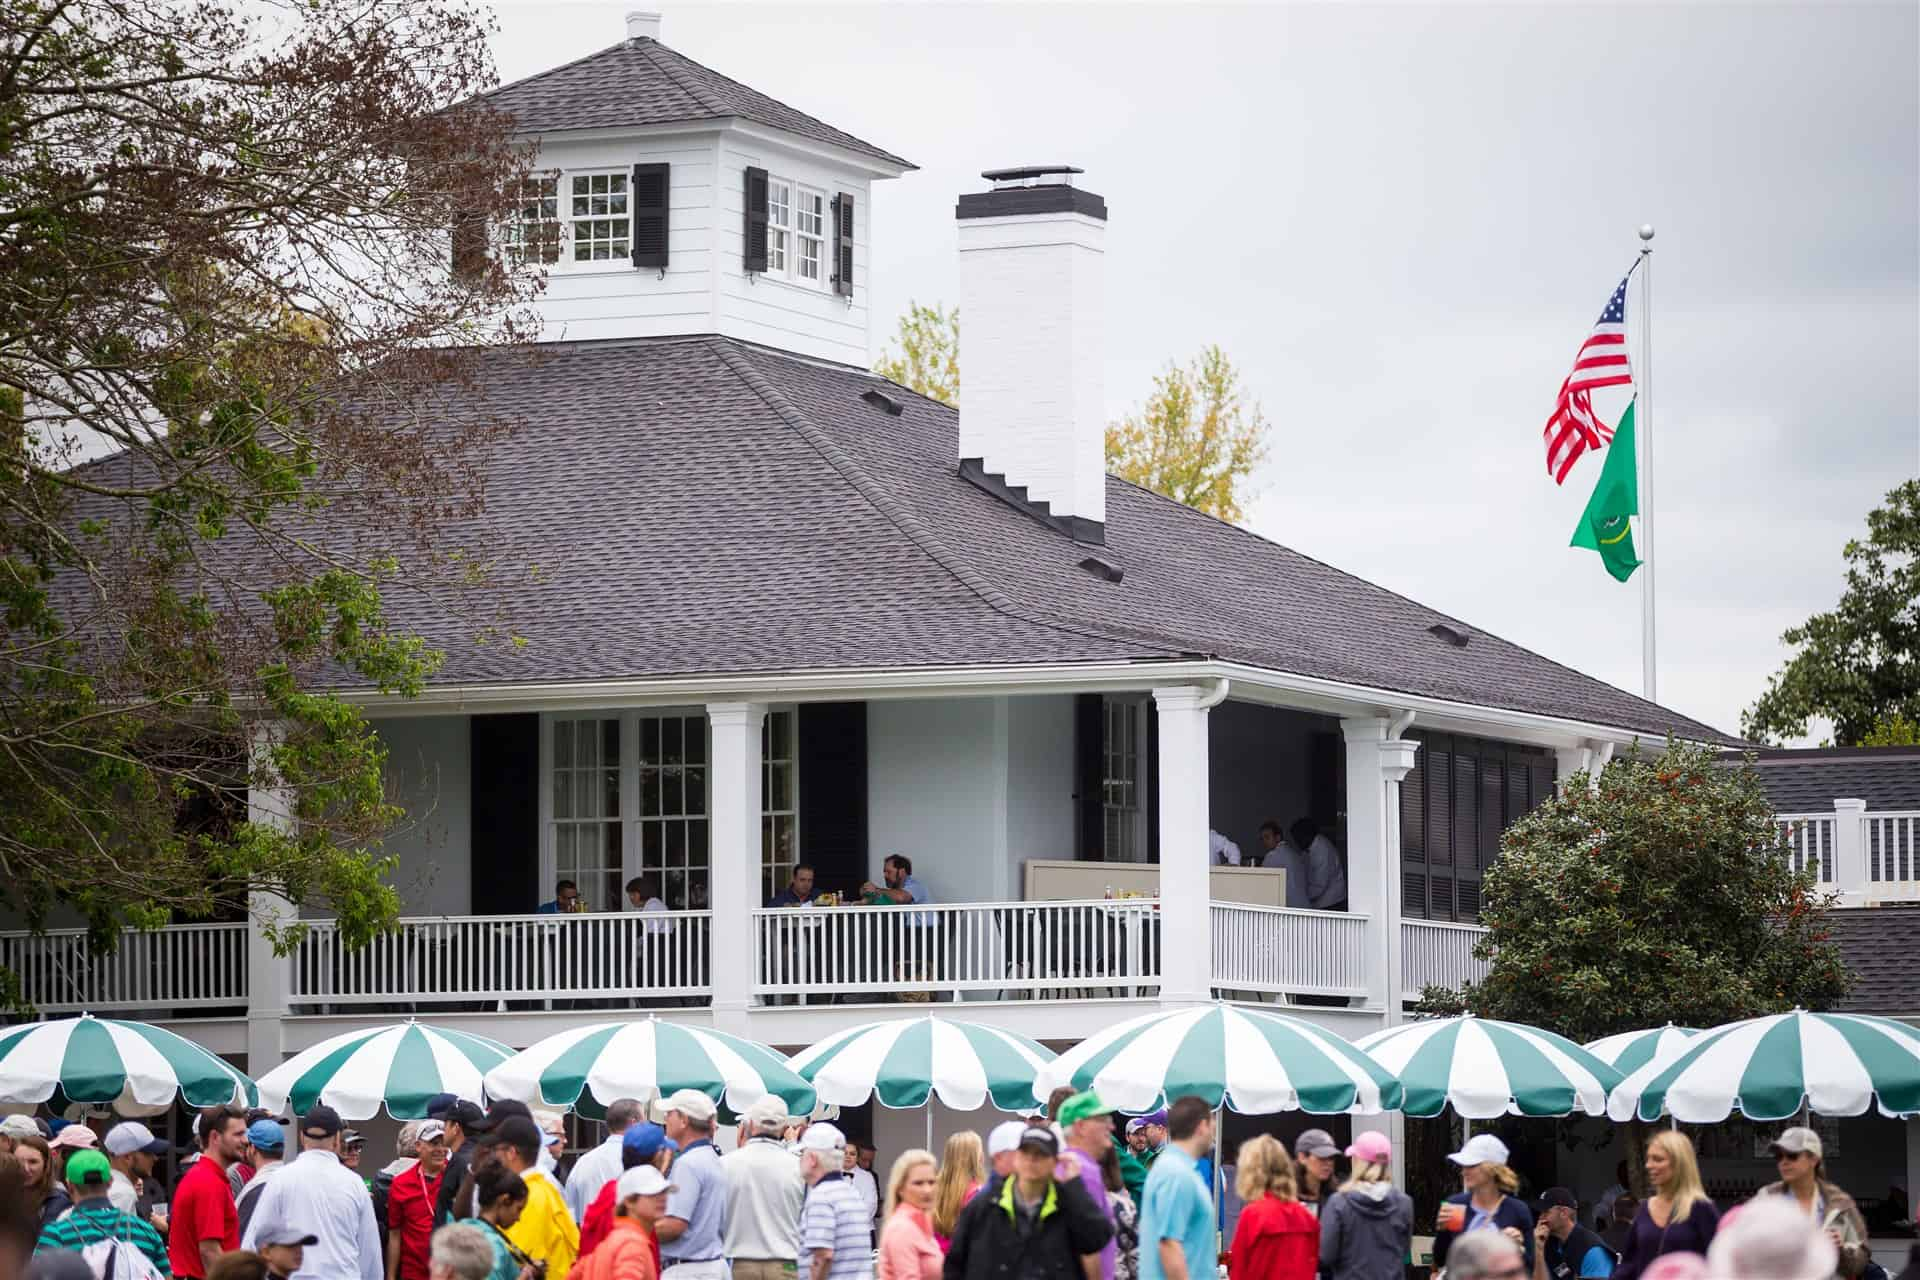 Photograph of the Augusta National clubhouse with the American flag and The Masters flag flying and hundreds of people milling about in excitement.